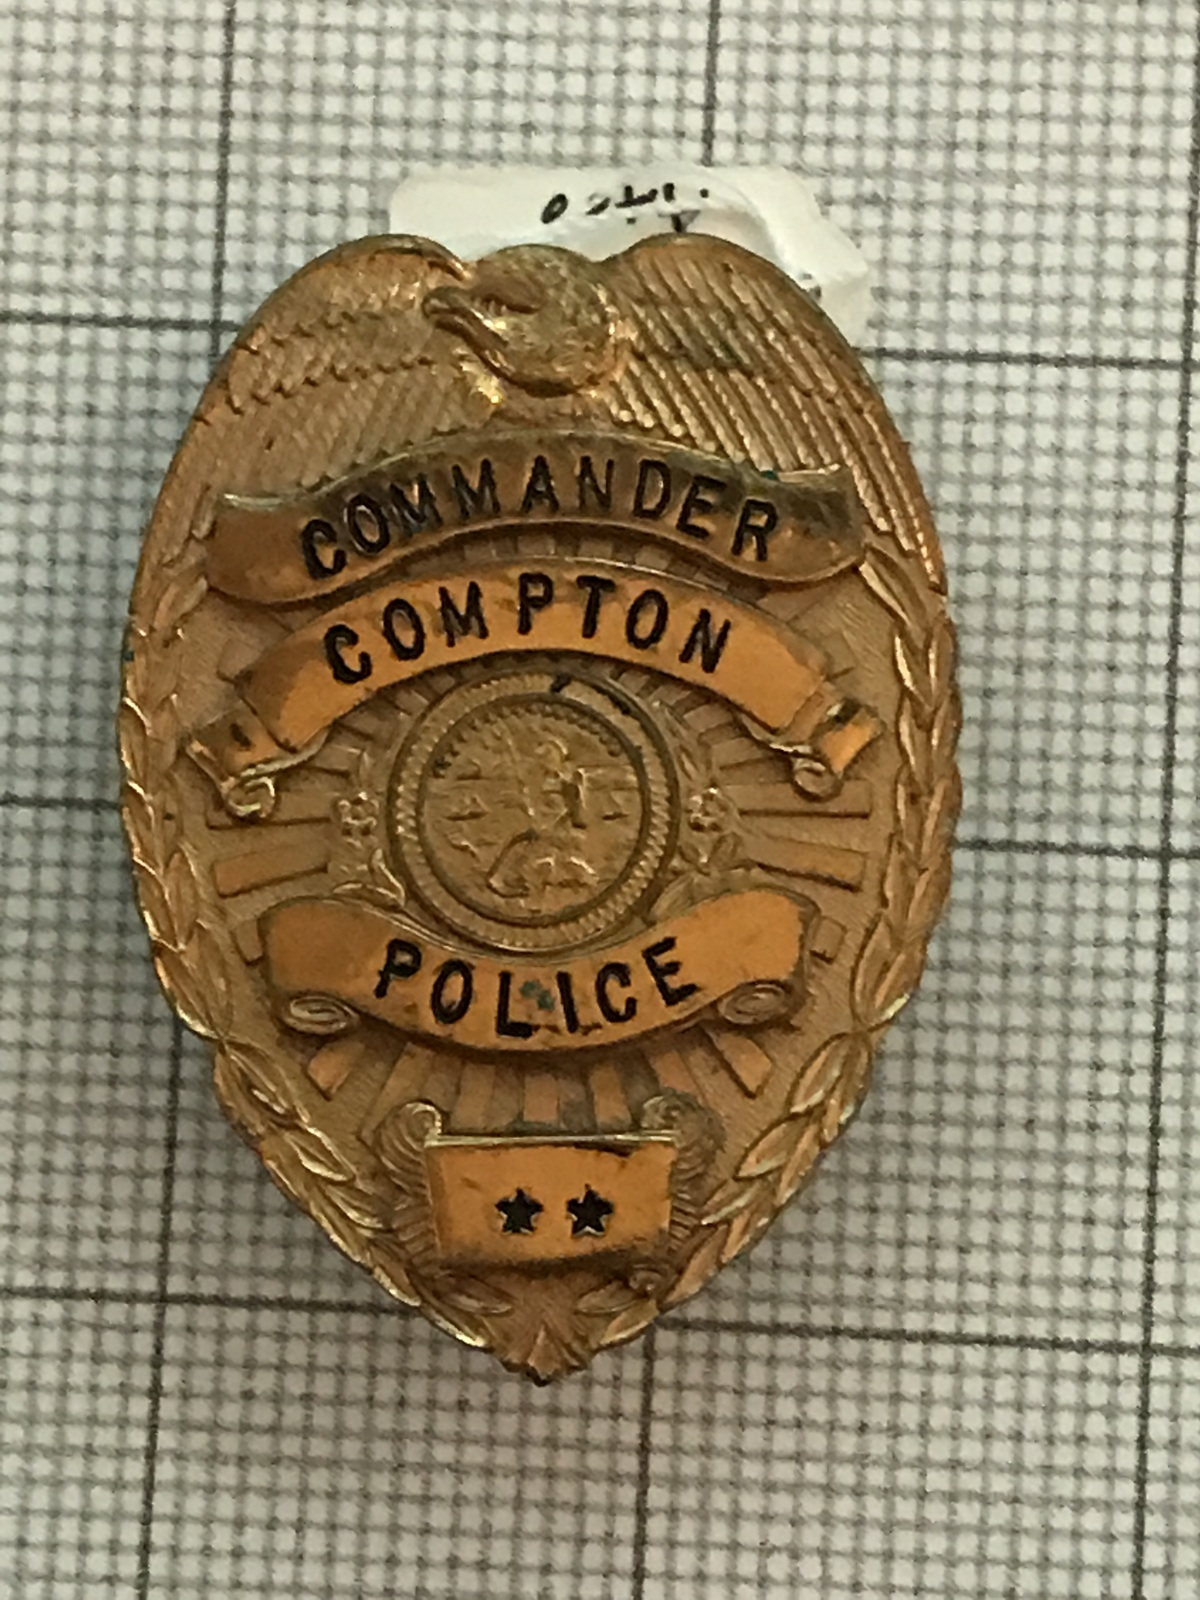 Primary image for Compton California Commander Police Obsolete Badge